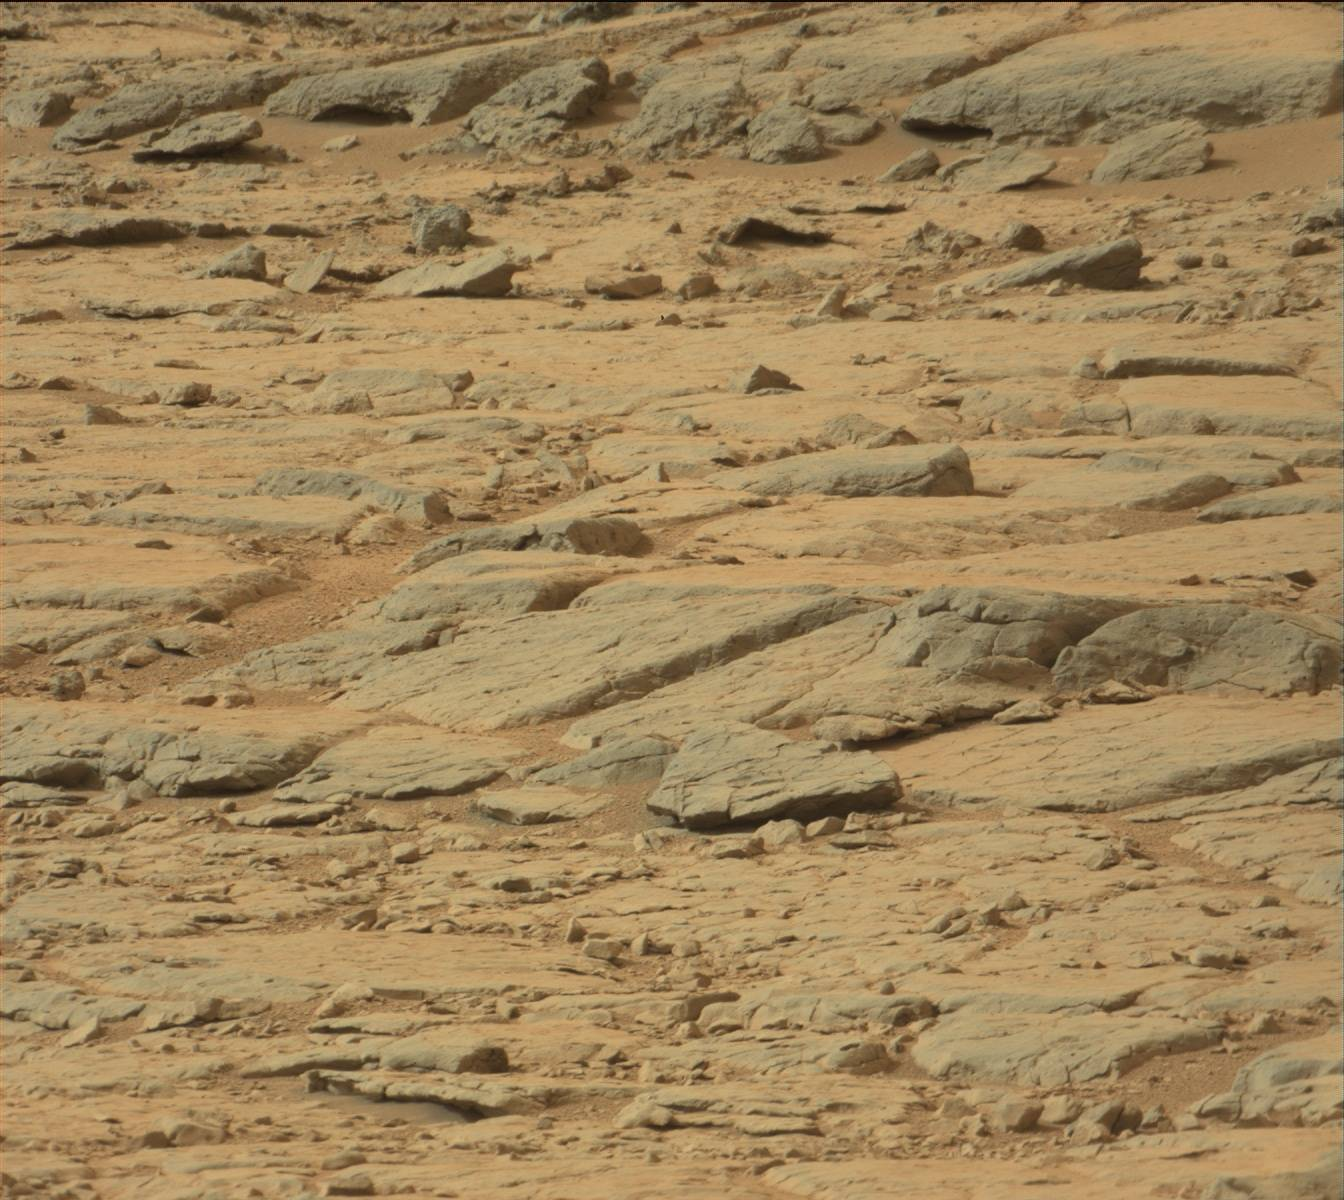 Curiosity at Glenelg: Just a Bizarre Landscape or ...